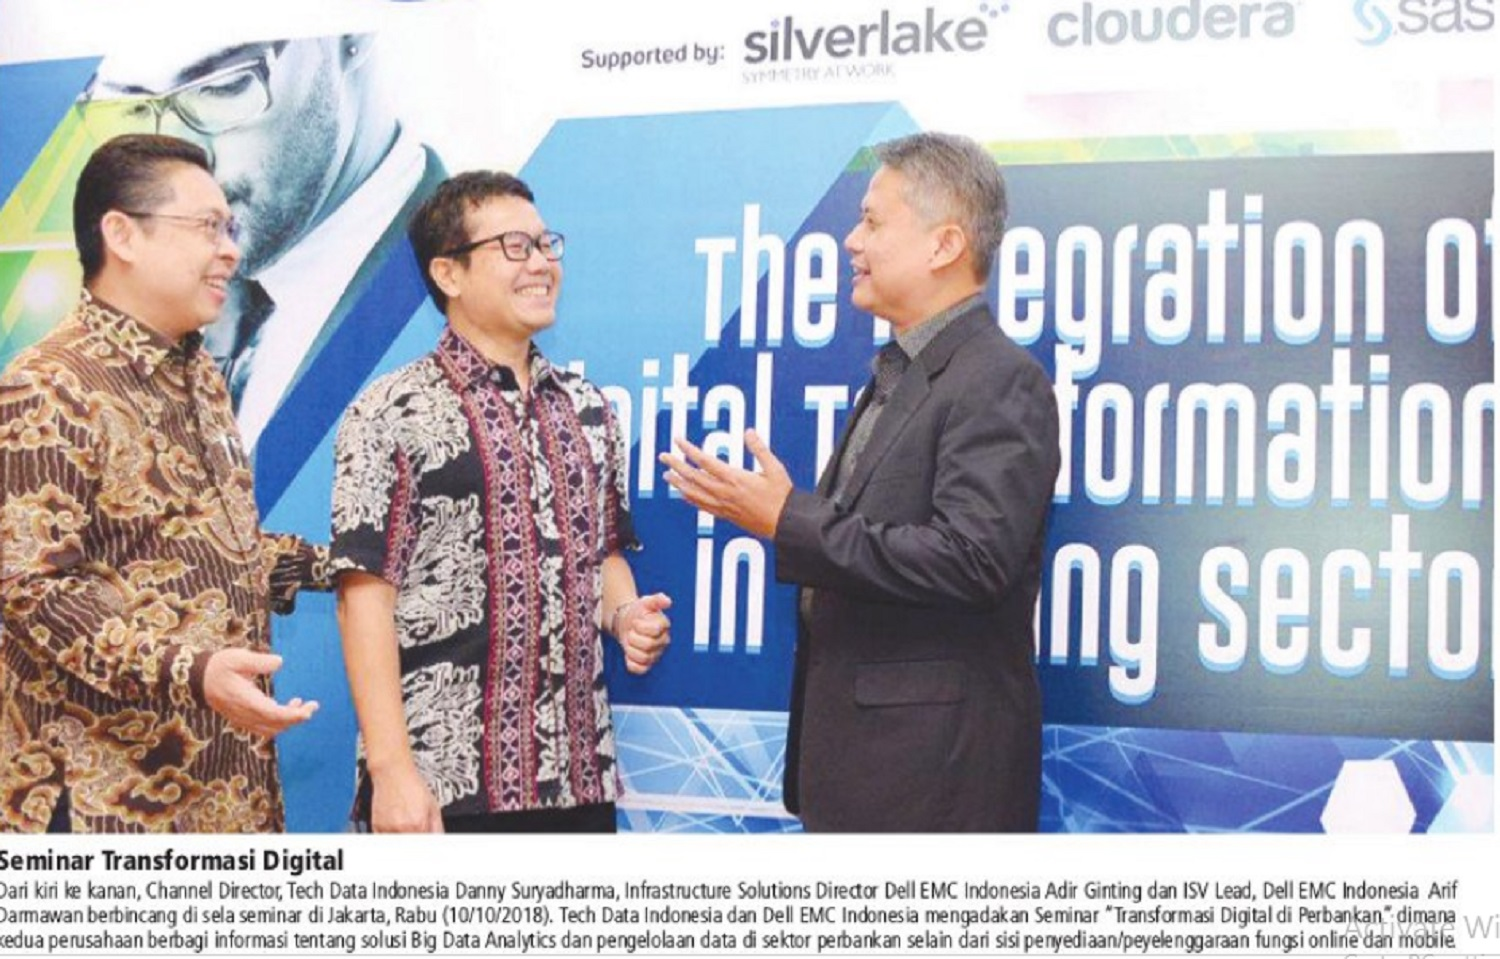 Tech Data dan Dell EMC Adakan Seminar Transformasi Digital di Perbankan